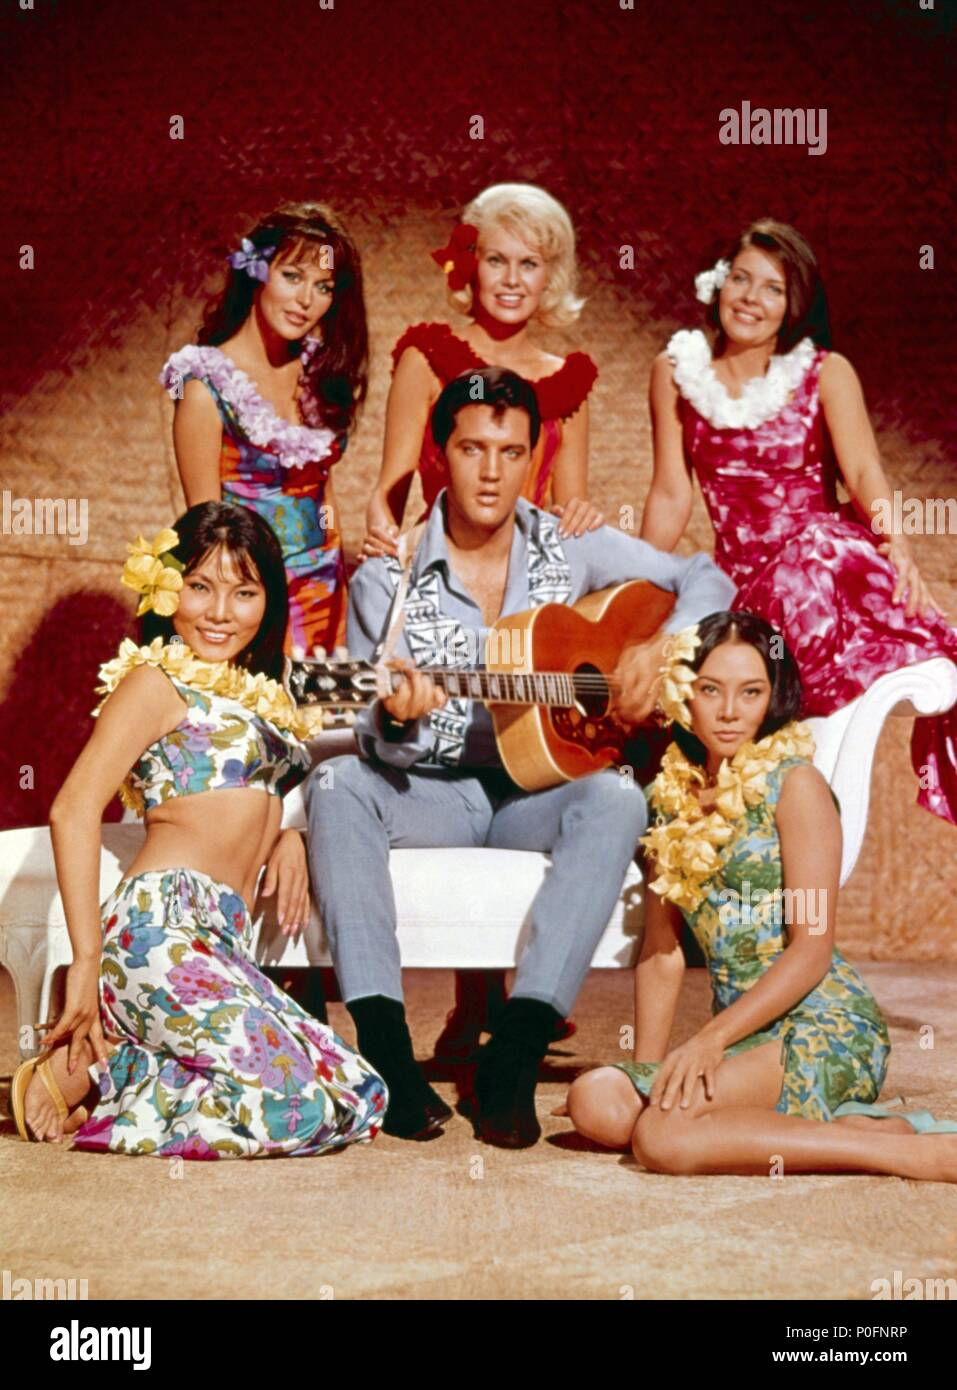 Original Film Title: PARADISE, HAWAIIAN STYLE.  English Title: PARADISE, HAWAIIAN STYLE.  Film Director: MICHAEL D. MOORE.  Year: 1966.  Stars: ELVIS PRESLEY. Credit: PARAMOUNT PICTURES / Album - Stock Image